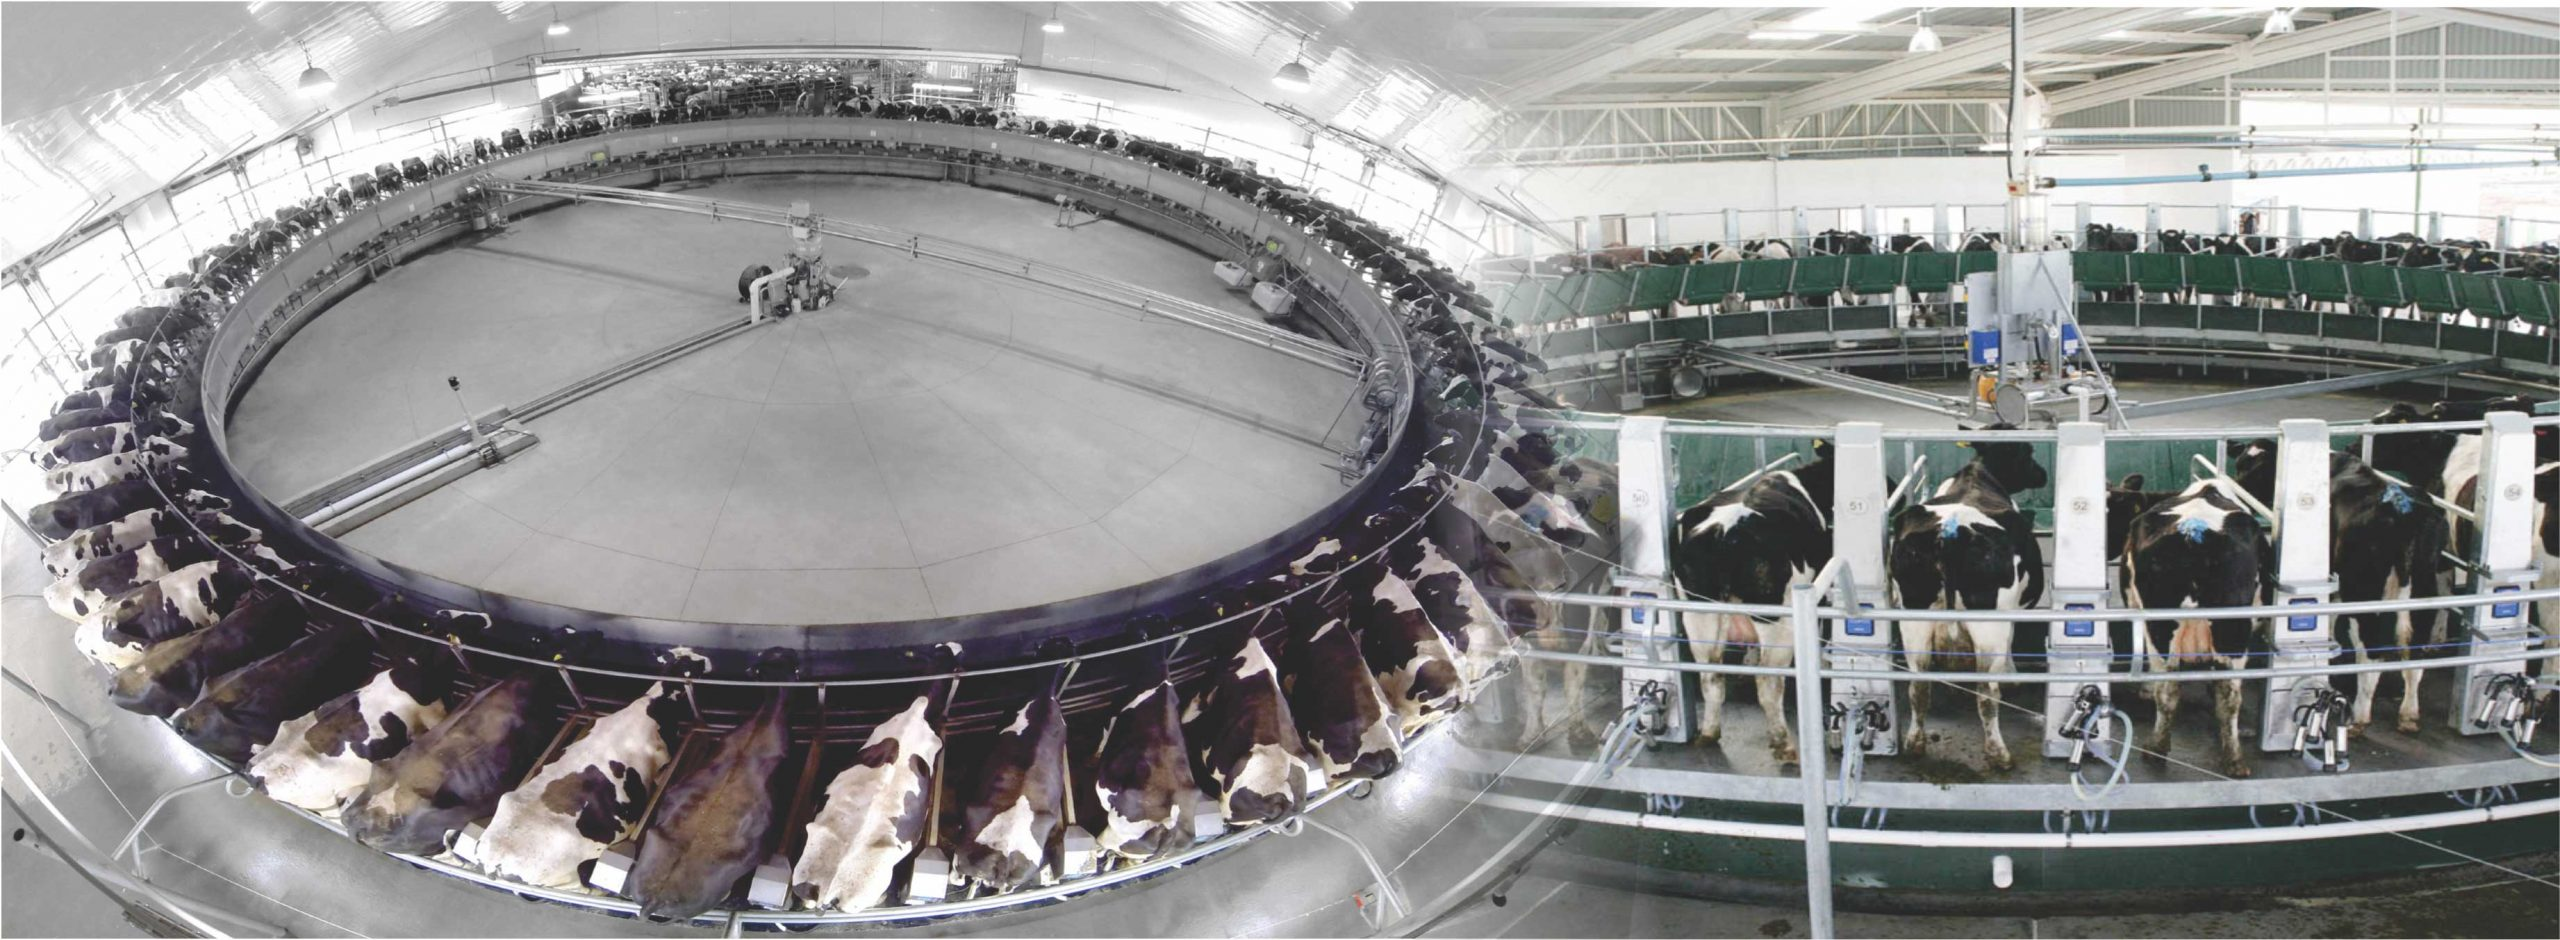 Rotary Automatic Milking Parlor